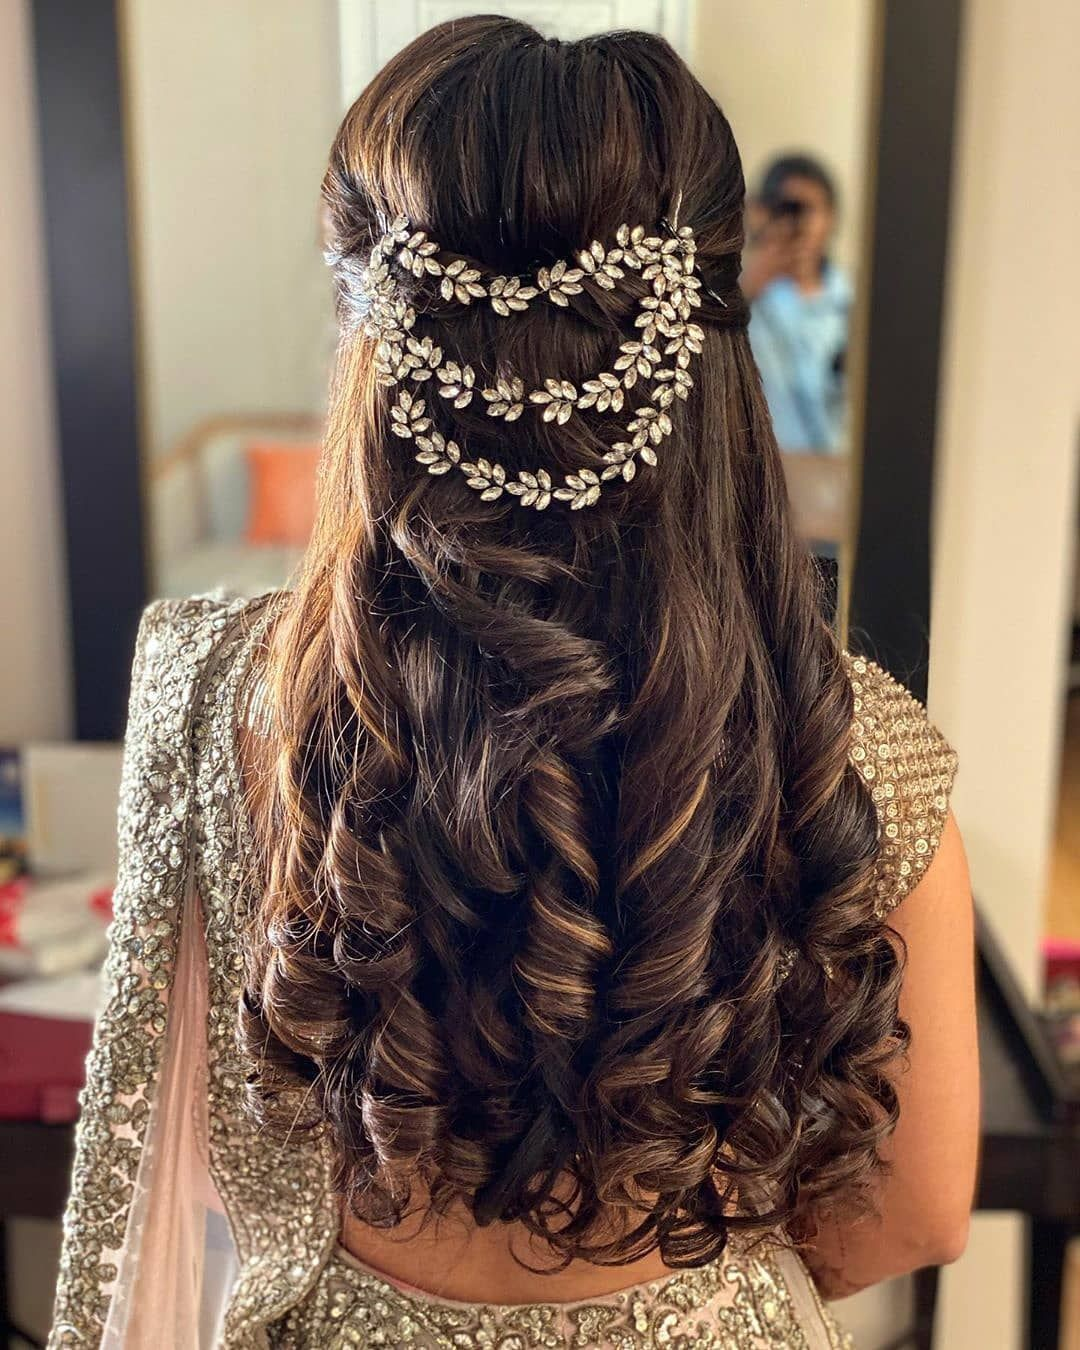 Bridal Hairstyles Hairstyles For Indian Brides Bridal Hair Buns Engagement Hairstyles Hair Styles